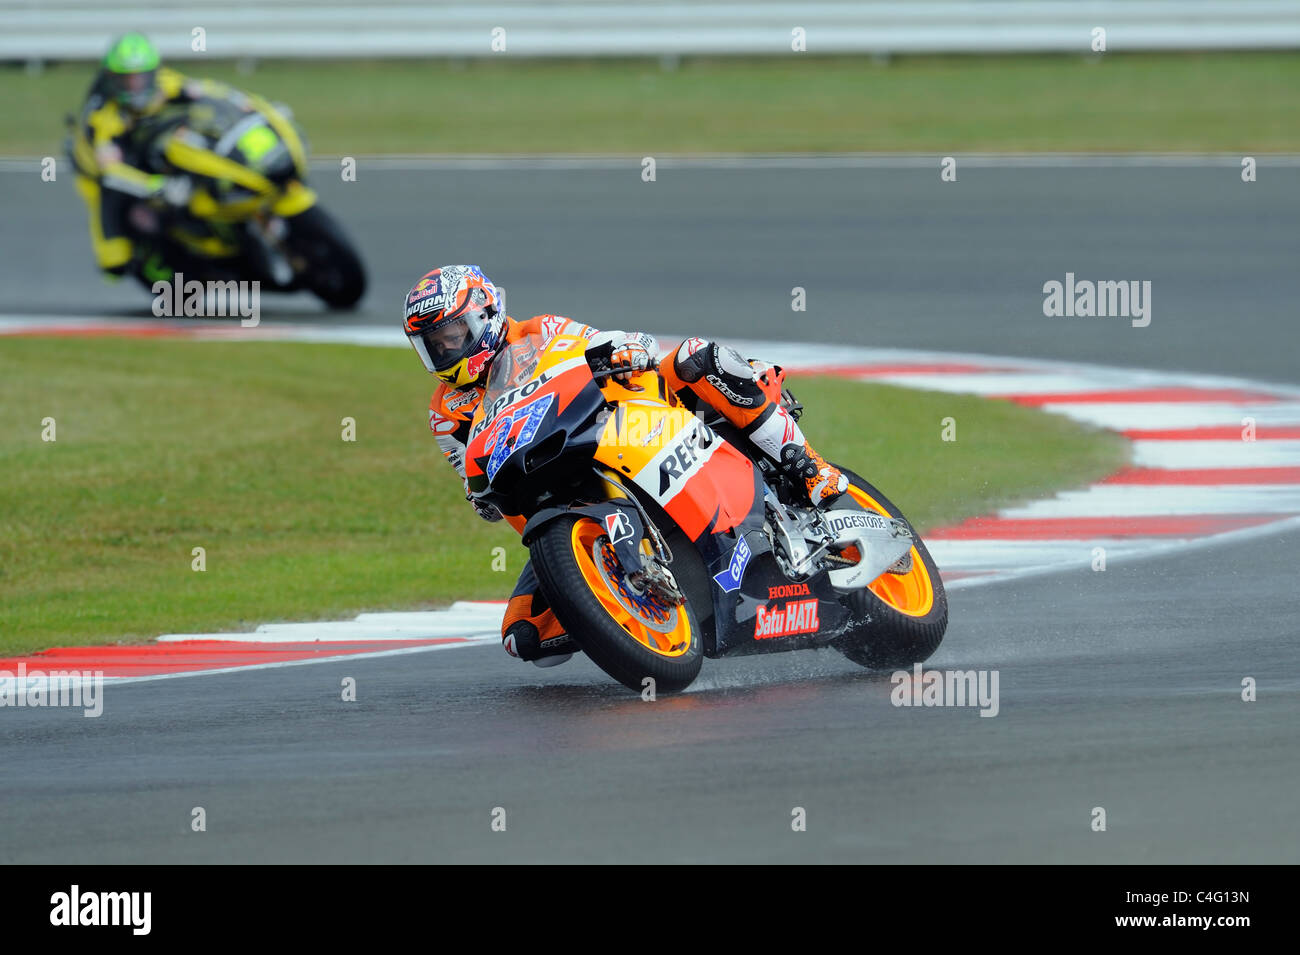 casey stoner and cal crutchlow in wet conditions, moto gp, 2011, - Stock Image